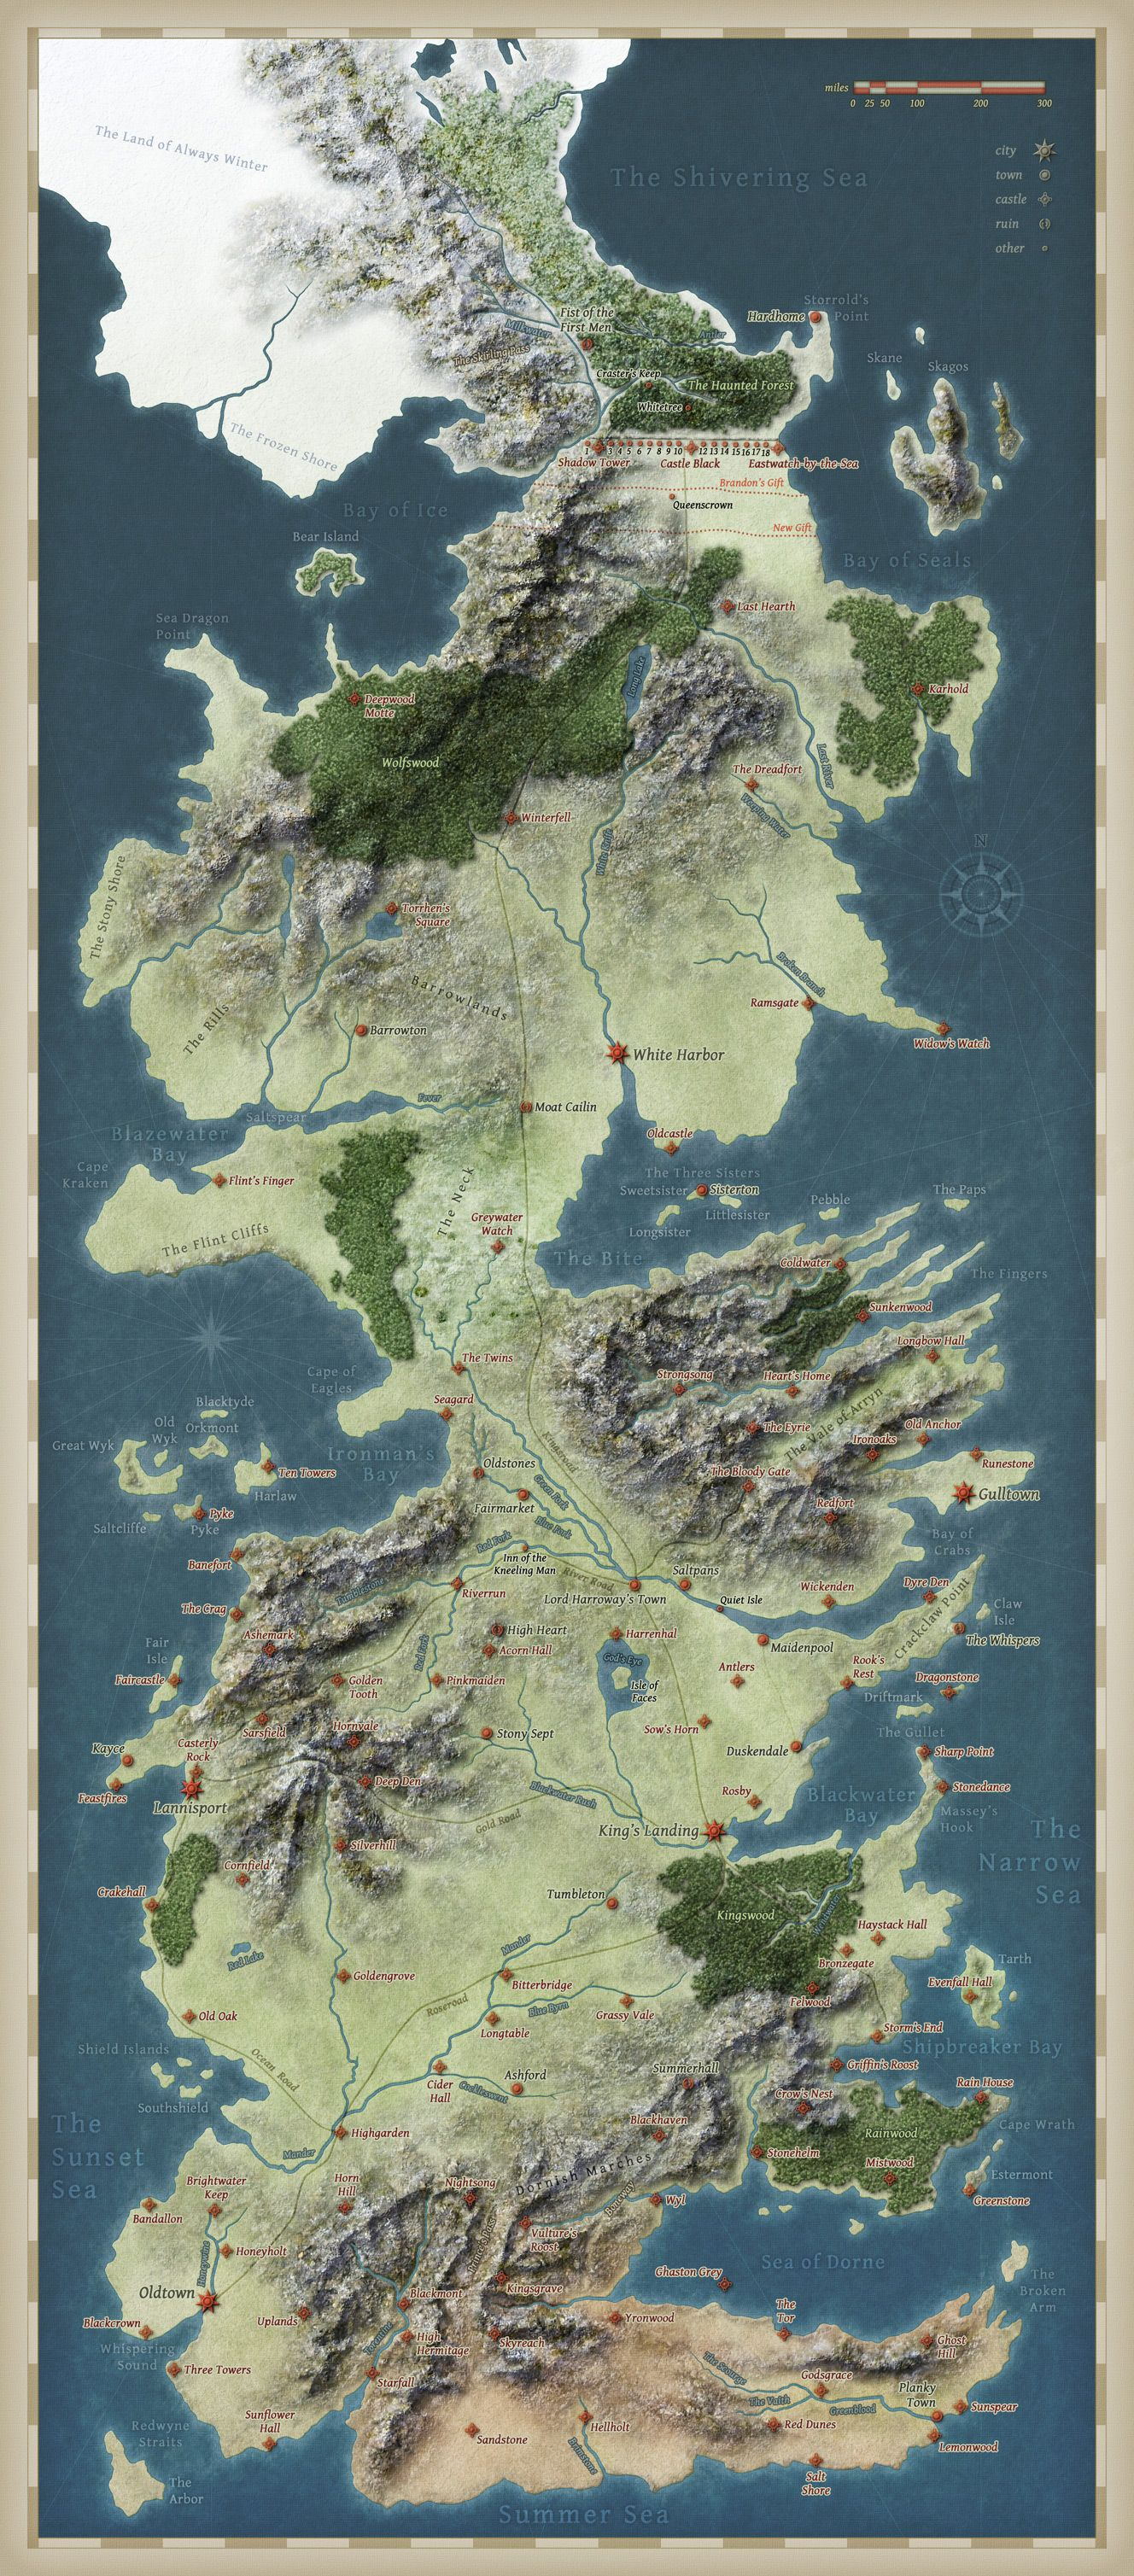 Westeros Continent in which the series A Song of Ice Fire takes